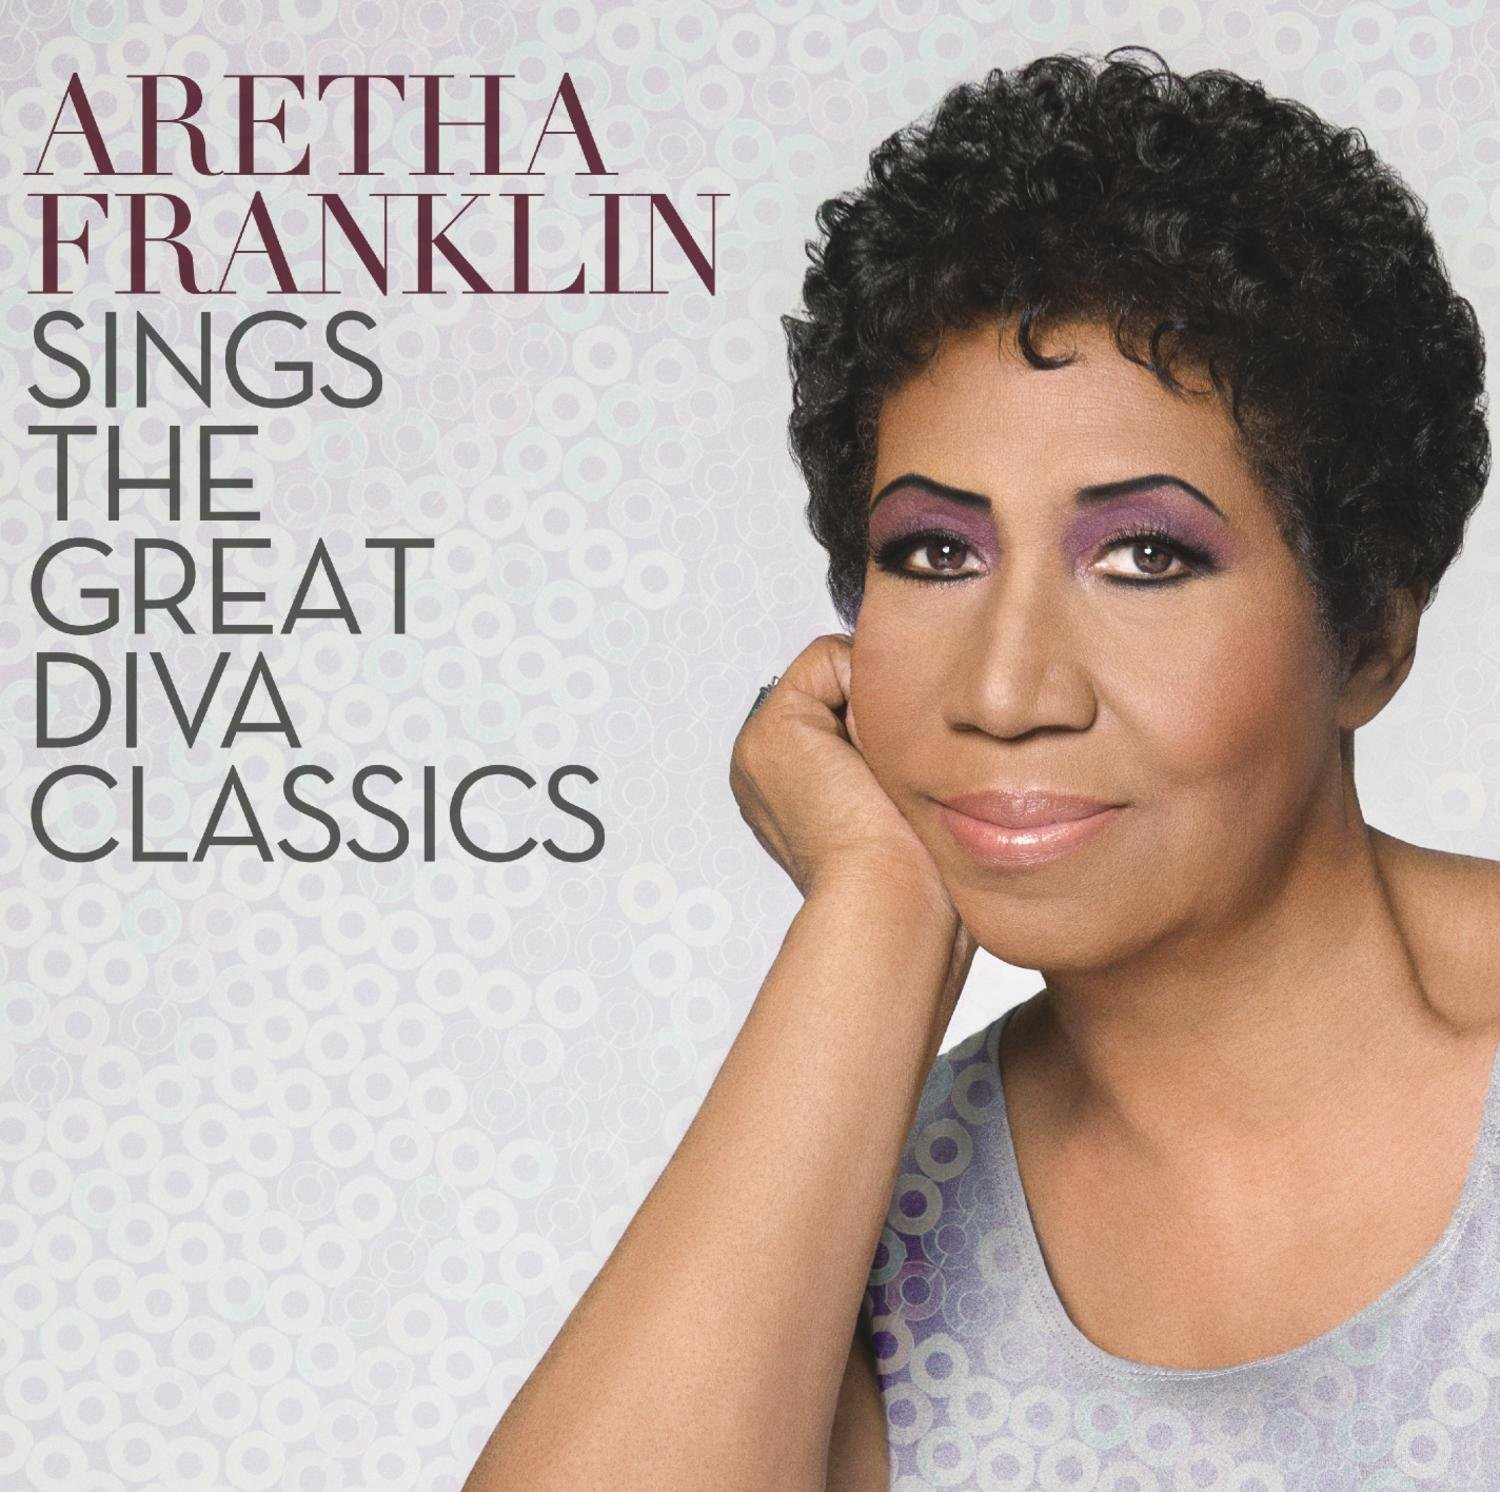 Aretha Franklin Is Enthusiastic, Flawed On 'Great Diva Classics'